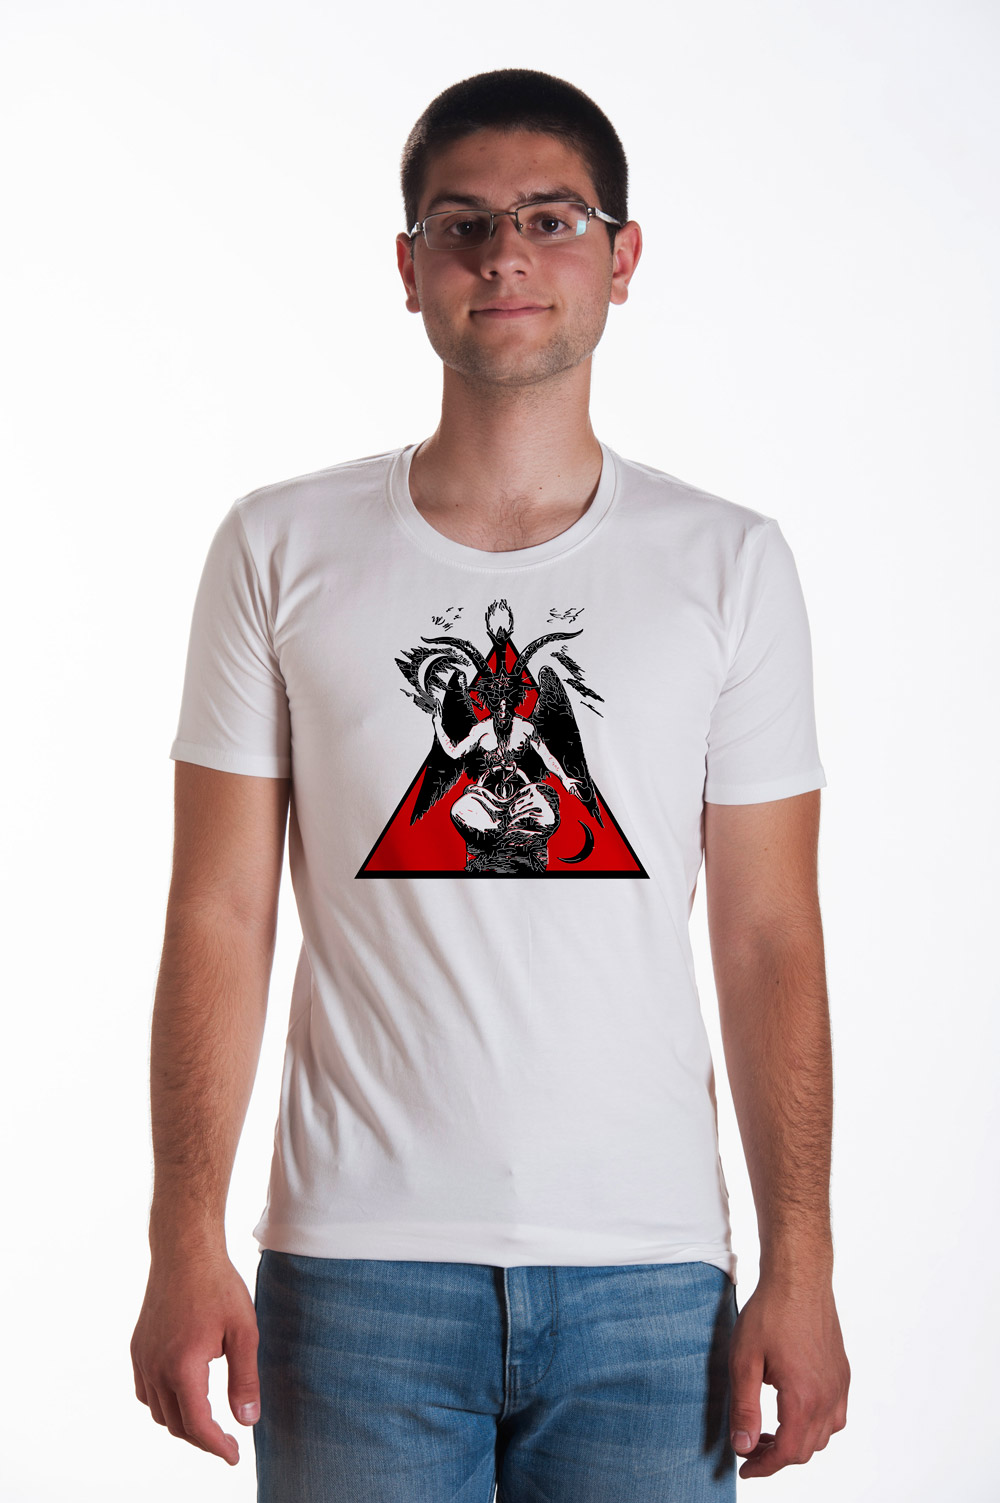 Masonic Symbol 9 Printed T shirt | Mason Tank top | Secret Society Tee